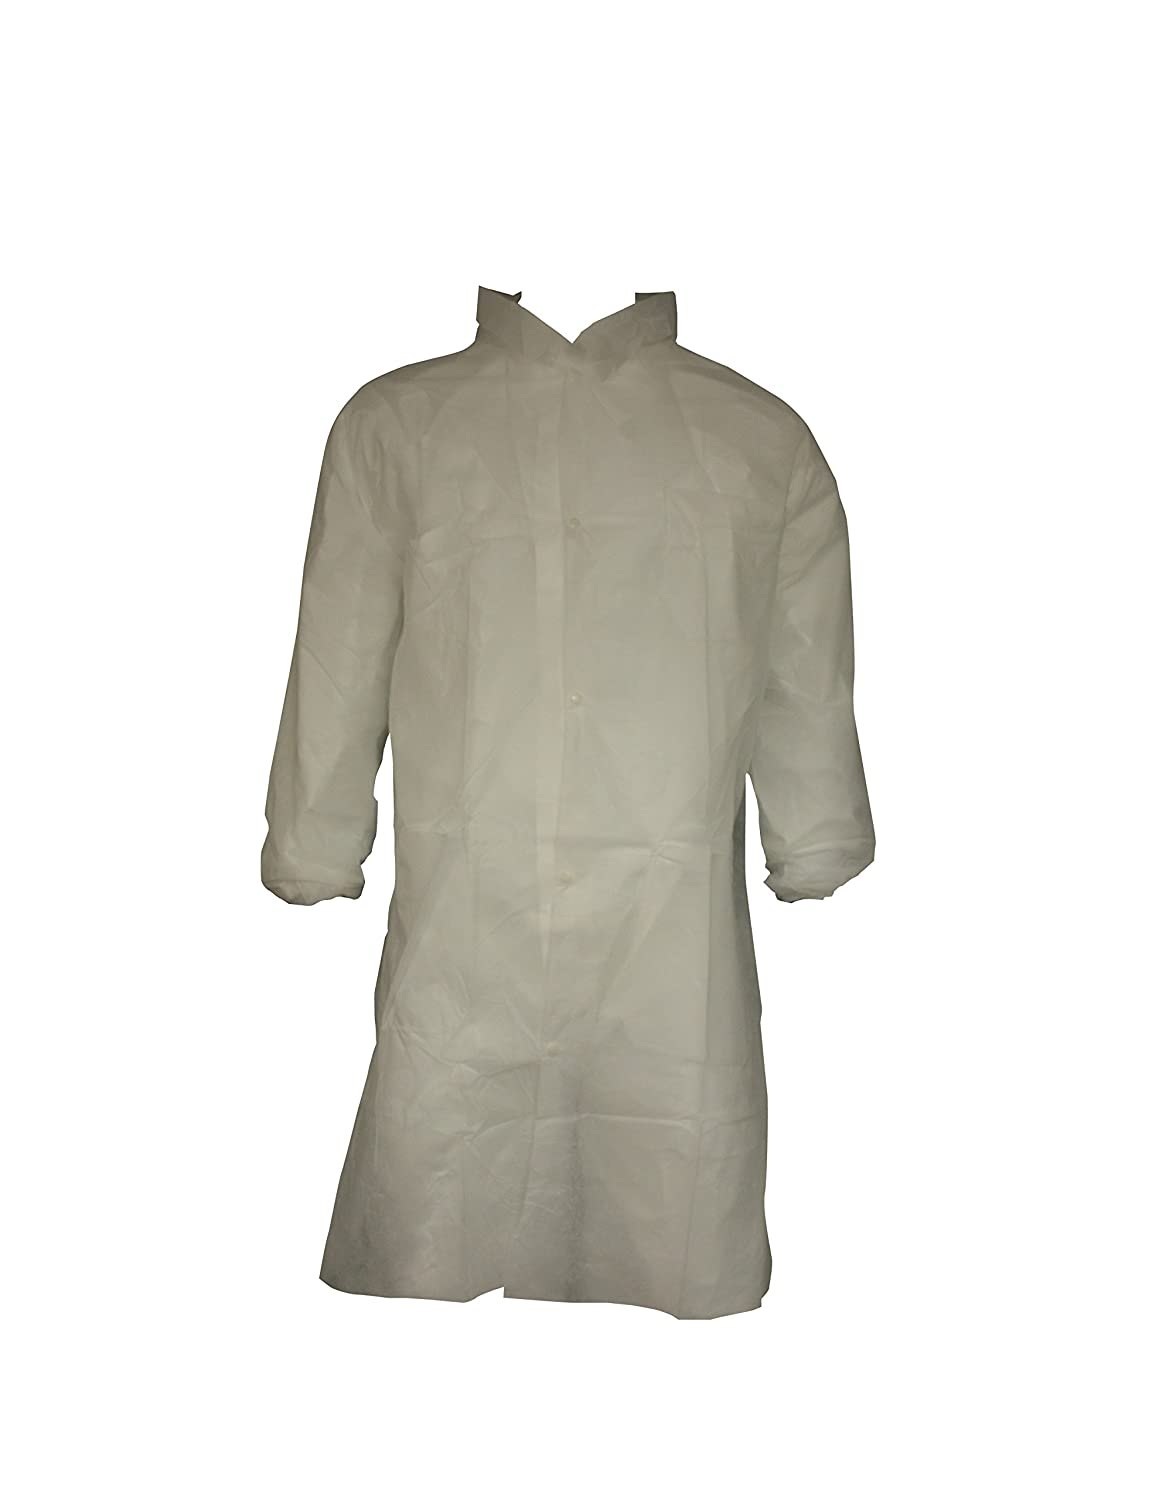 X-Large DuPont Tyvek 400 TY212S Disposable Lab Coat with Open Cuff White Pack of 30